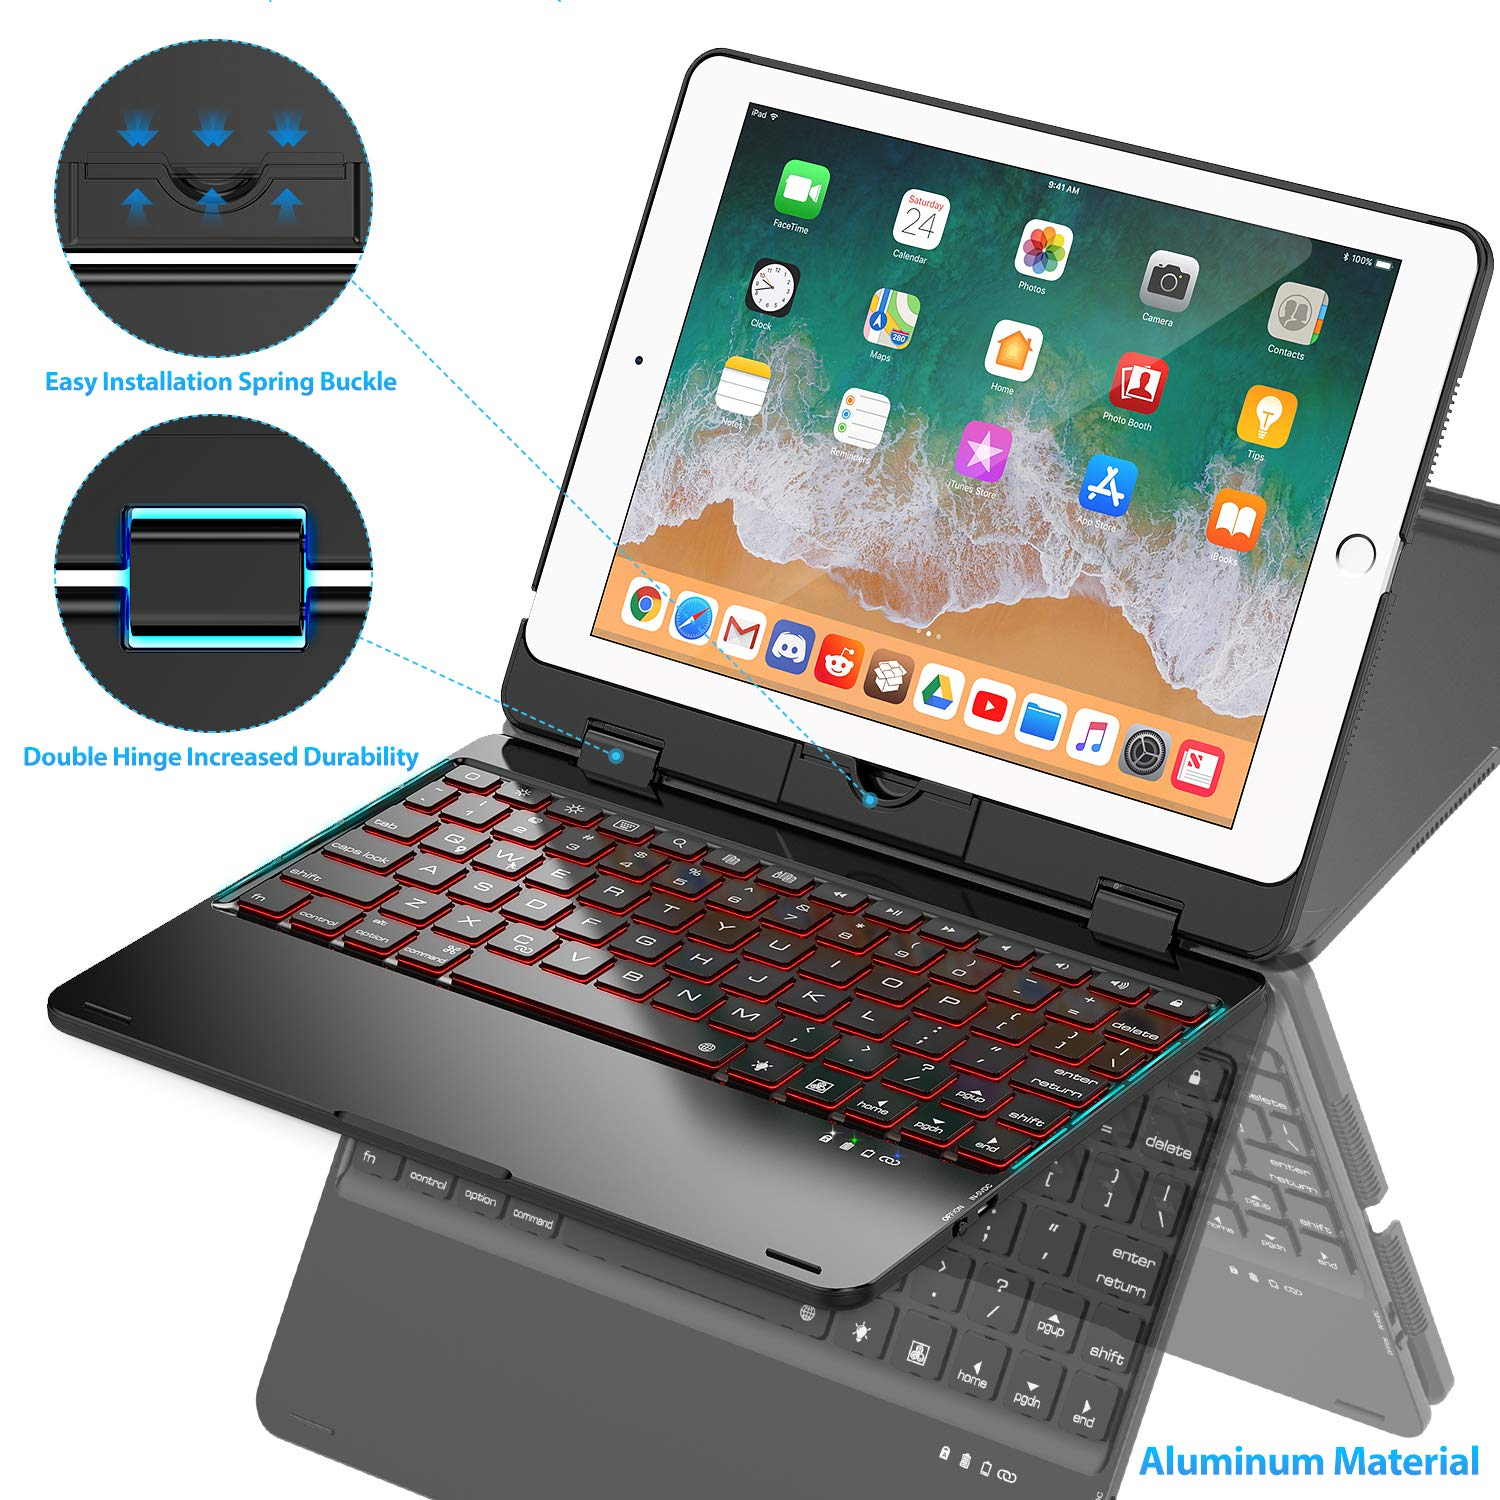 Keyboard Case Compatible with iPad 2018 (6th Gen)/ 2017 (5th Gen)/ iPad Pro 9.7/ iPad Air 2 & 1   360 Rotatable & Aluminum iPad Case with Keyboard - 7 Colors Backlit & Breathing Light (Black)